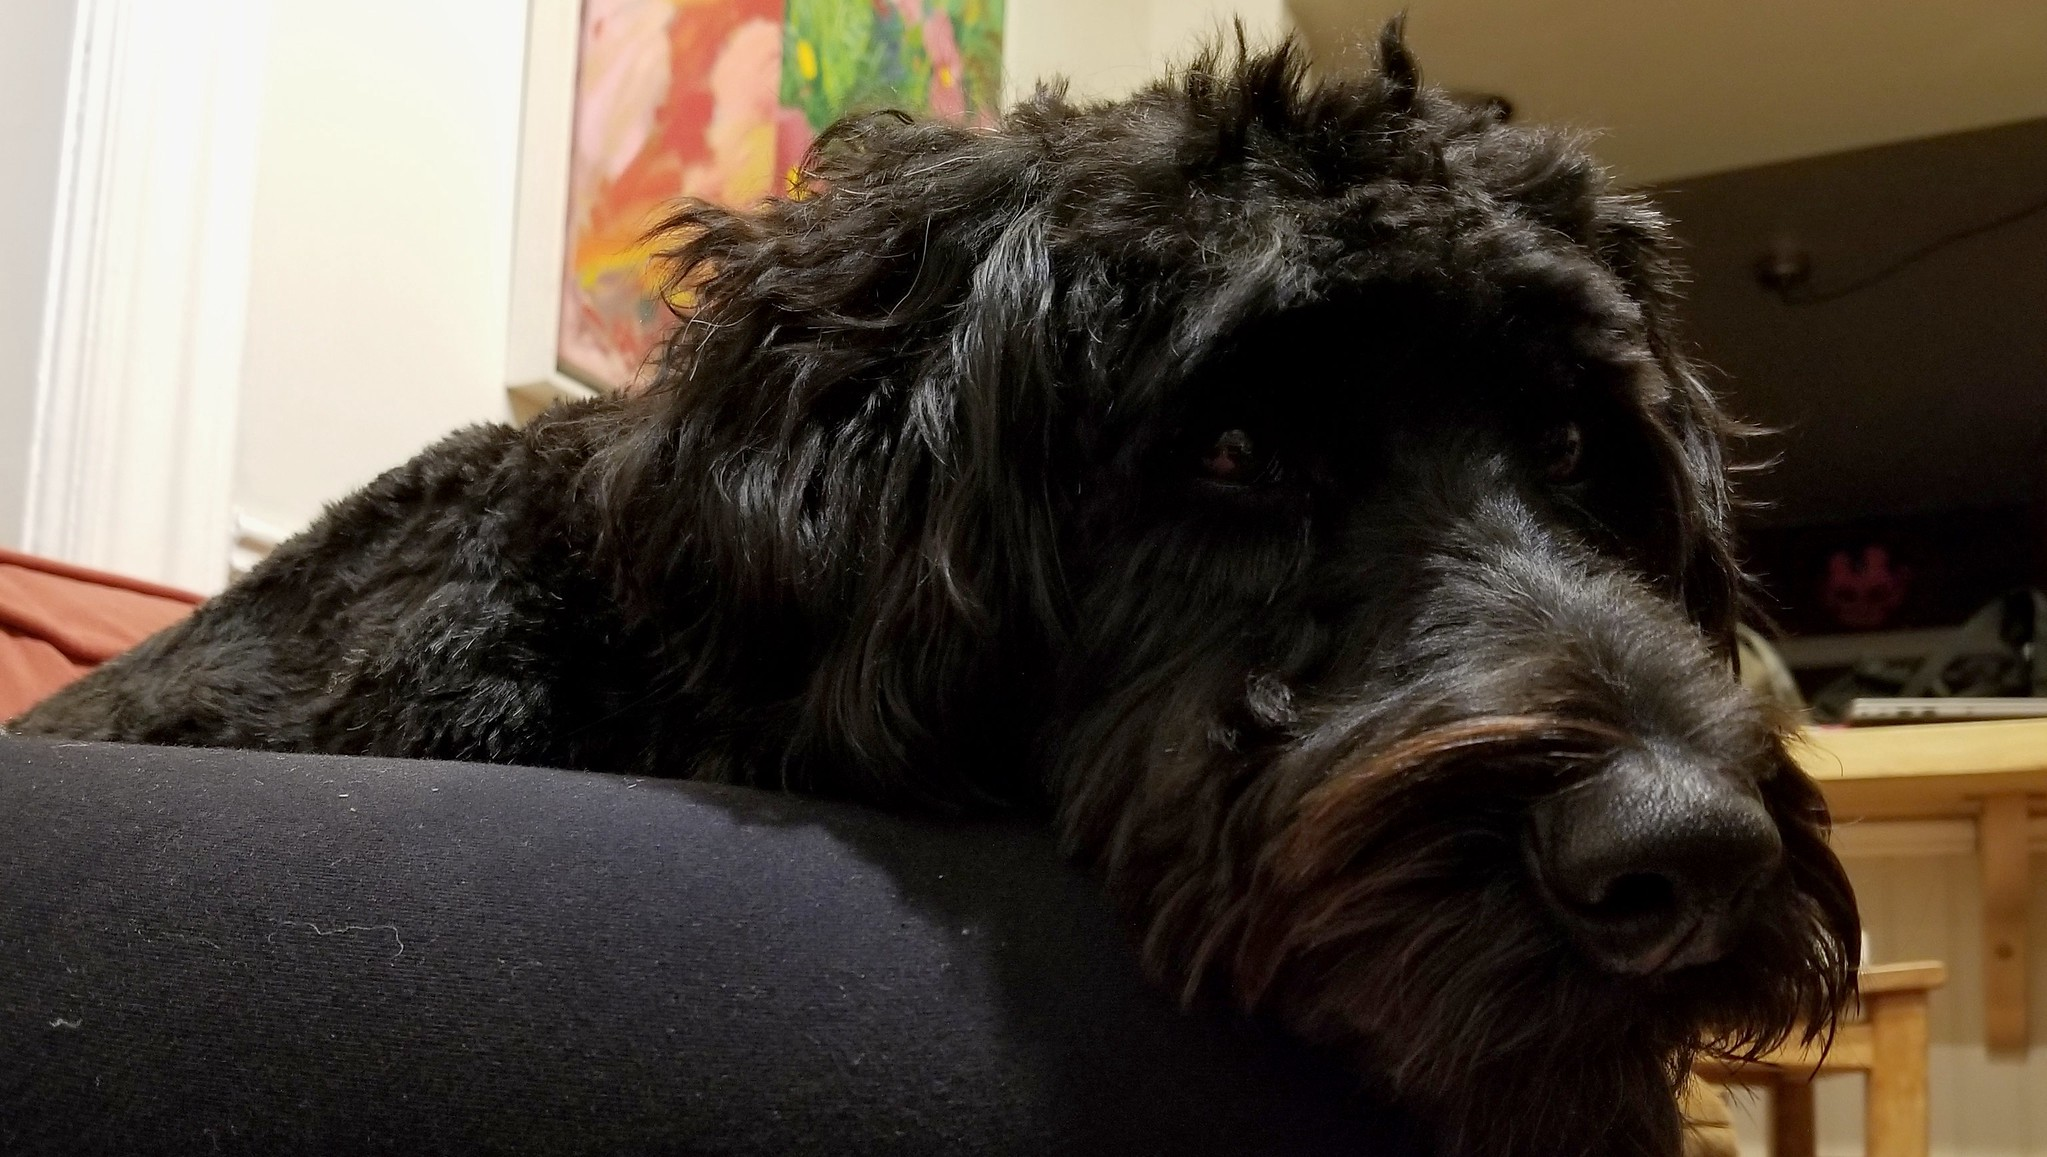 Sad black dog laying bored in bed.